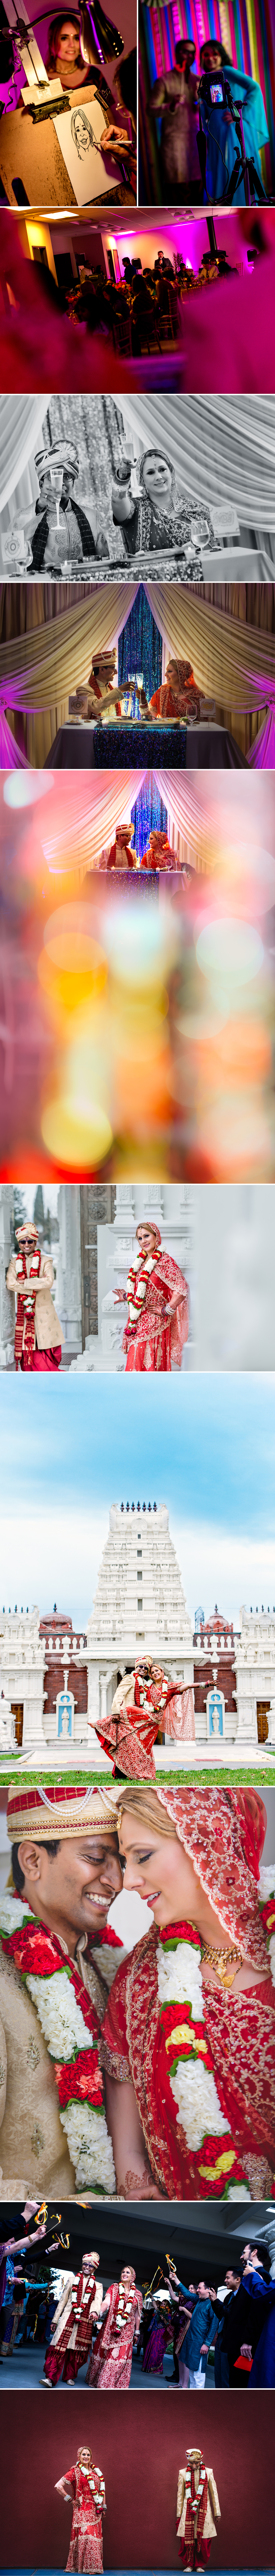 Indian Wedding Livermore temple